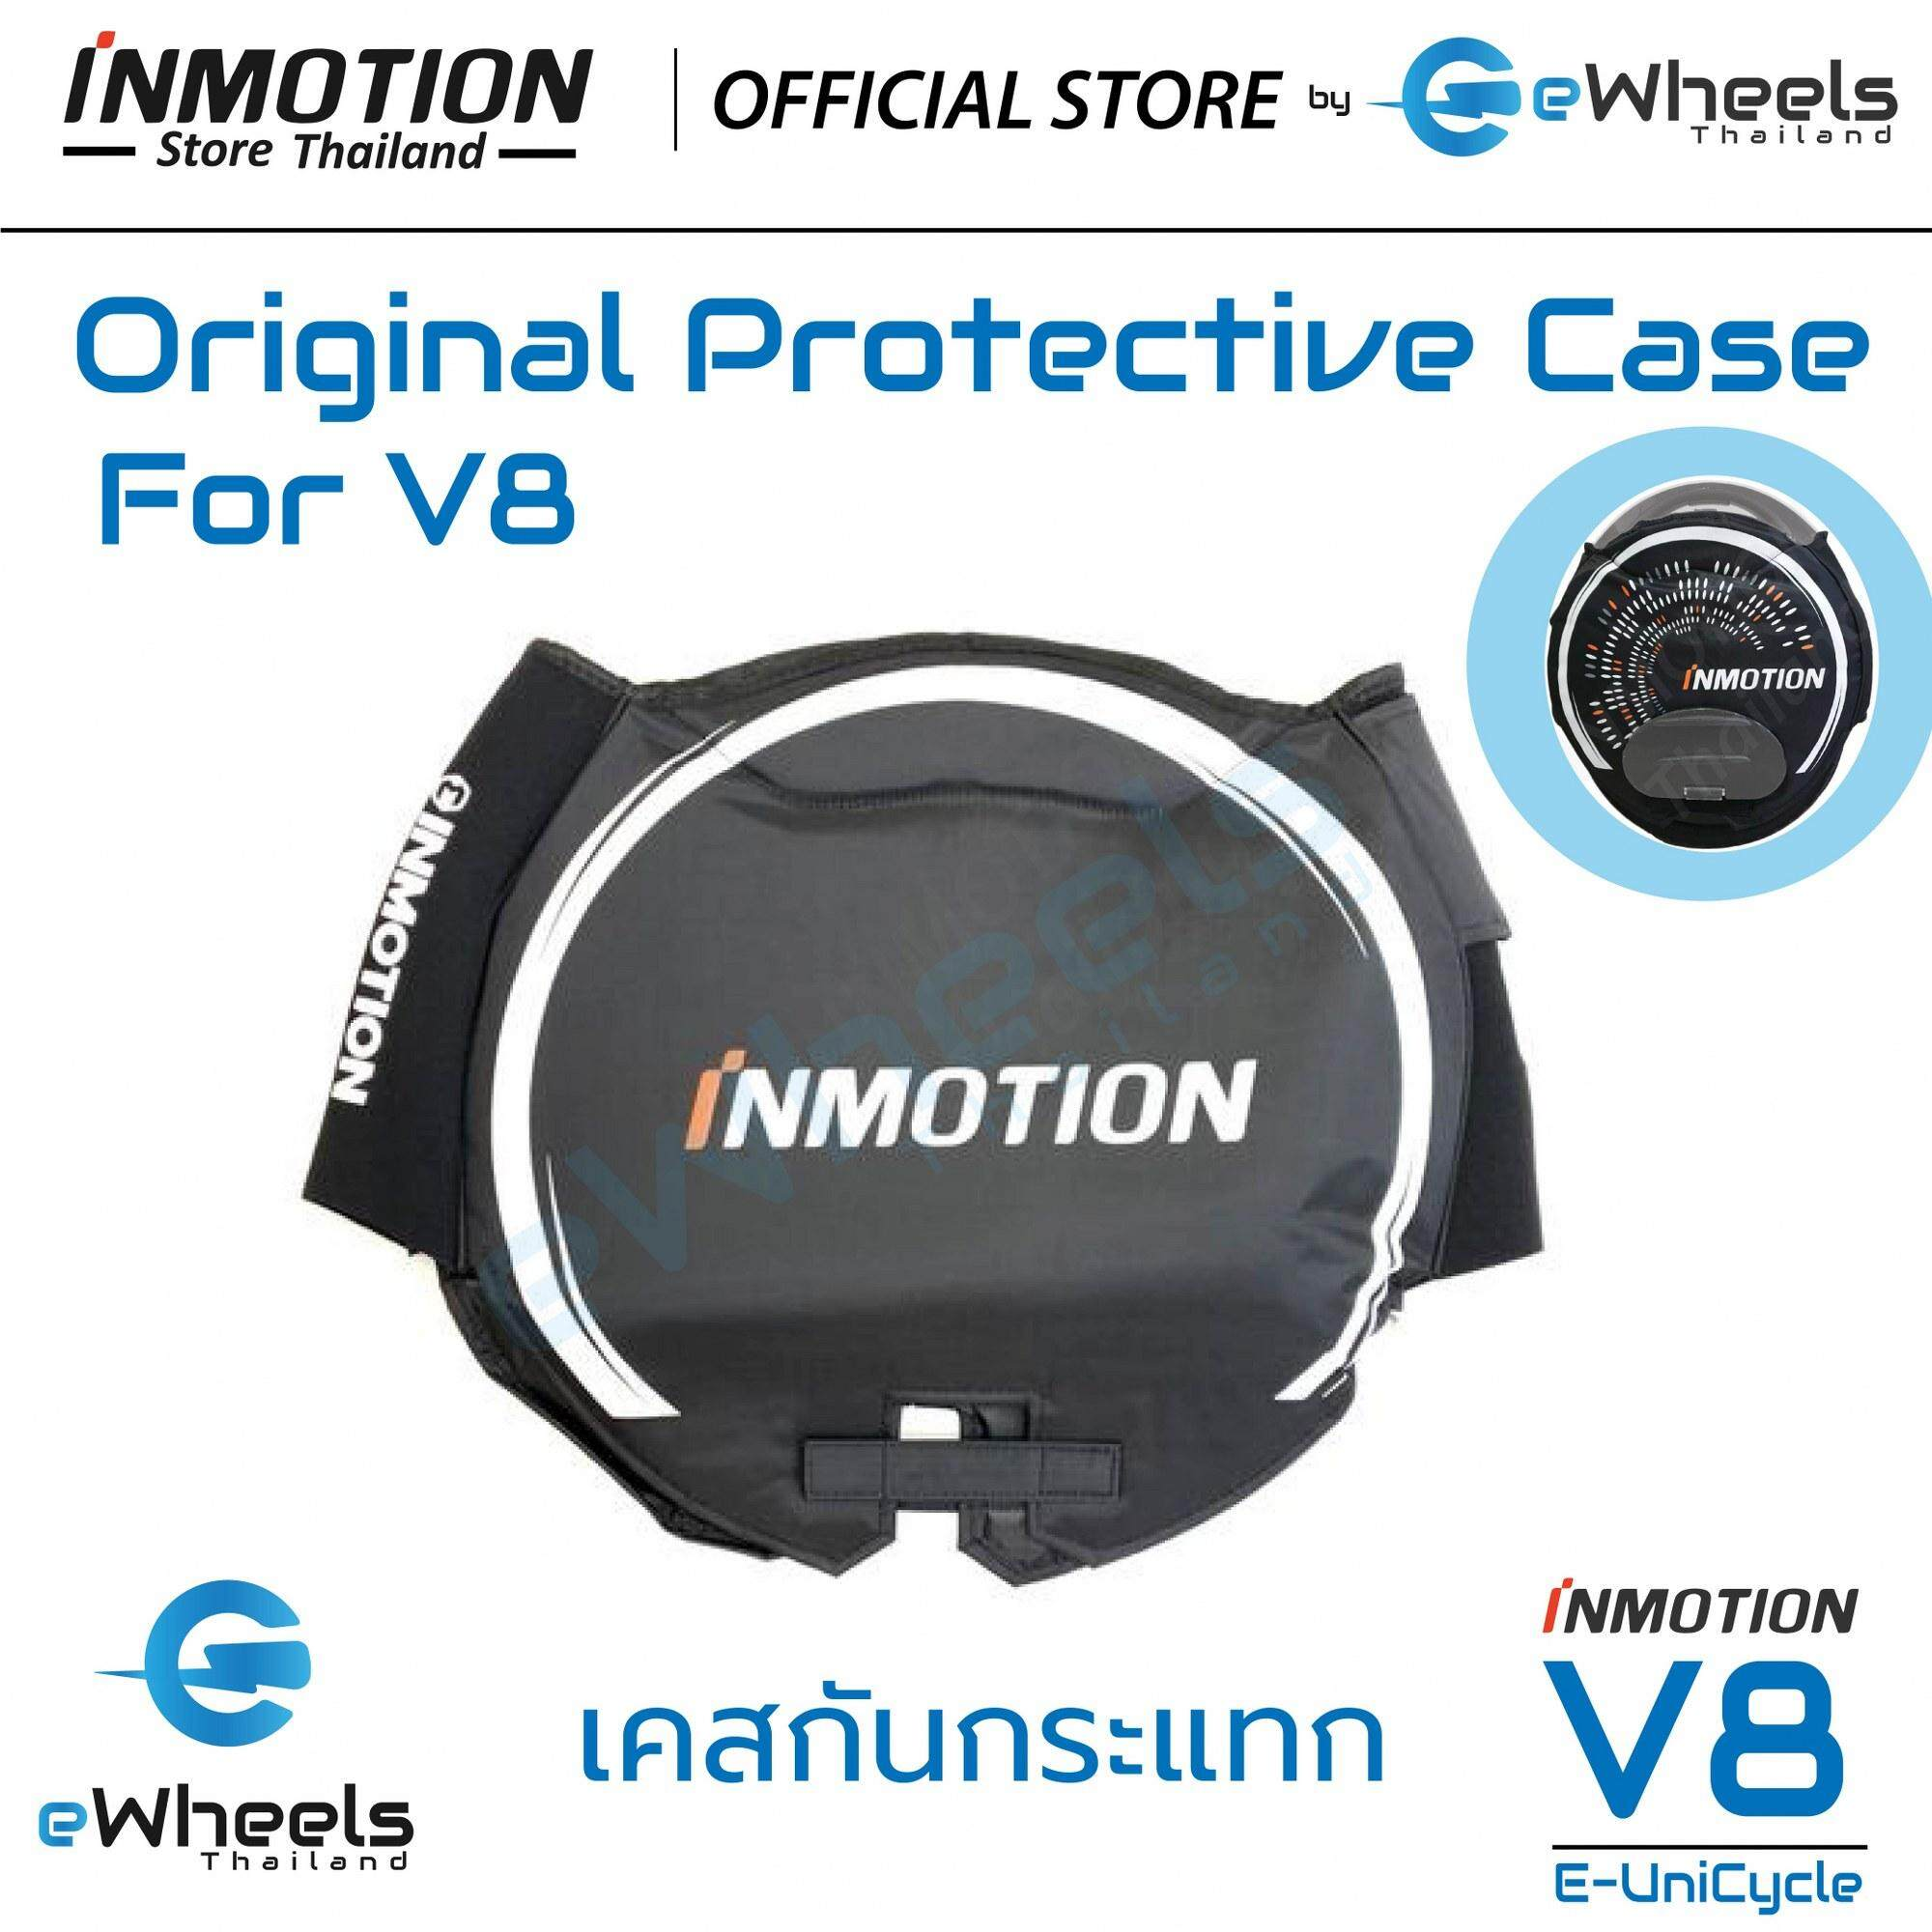 เคสกันกระแทก สำหรับ V8 ของแท้ Original Inmotion V8 Protective Case By Inmotion Thailand (by Ewheels Thailand).